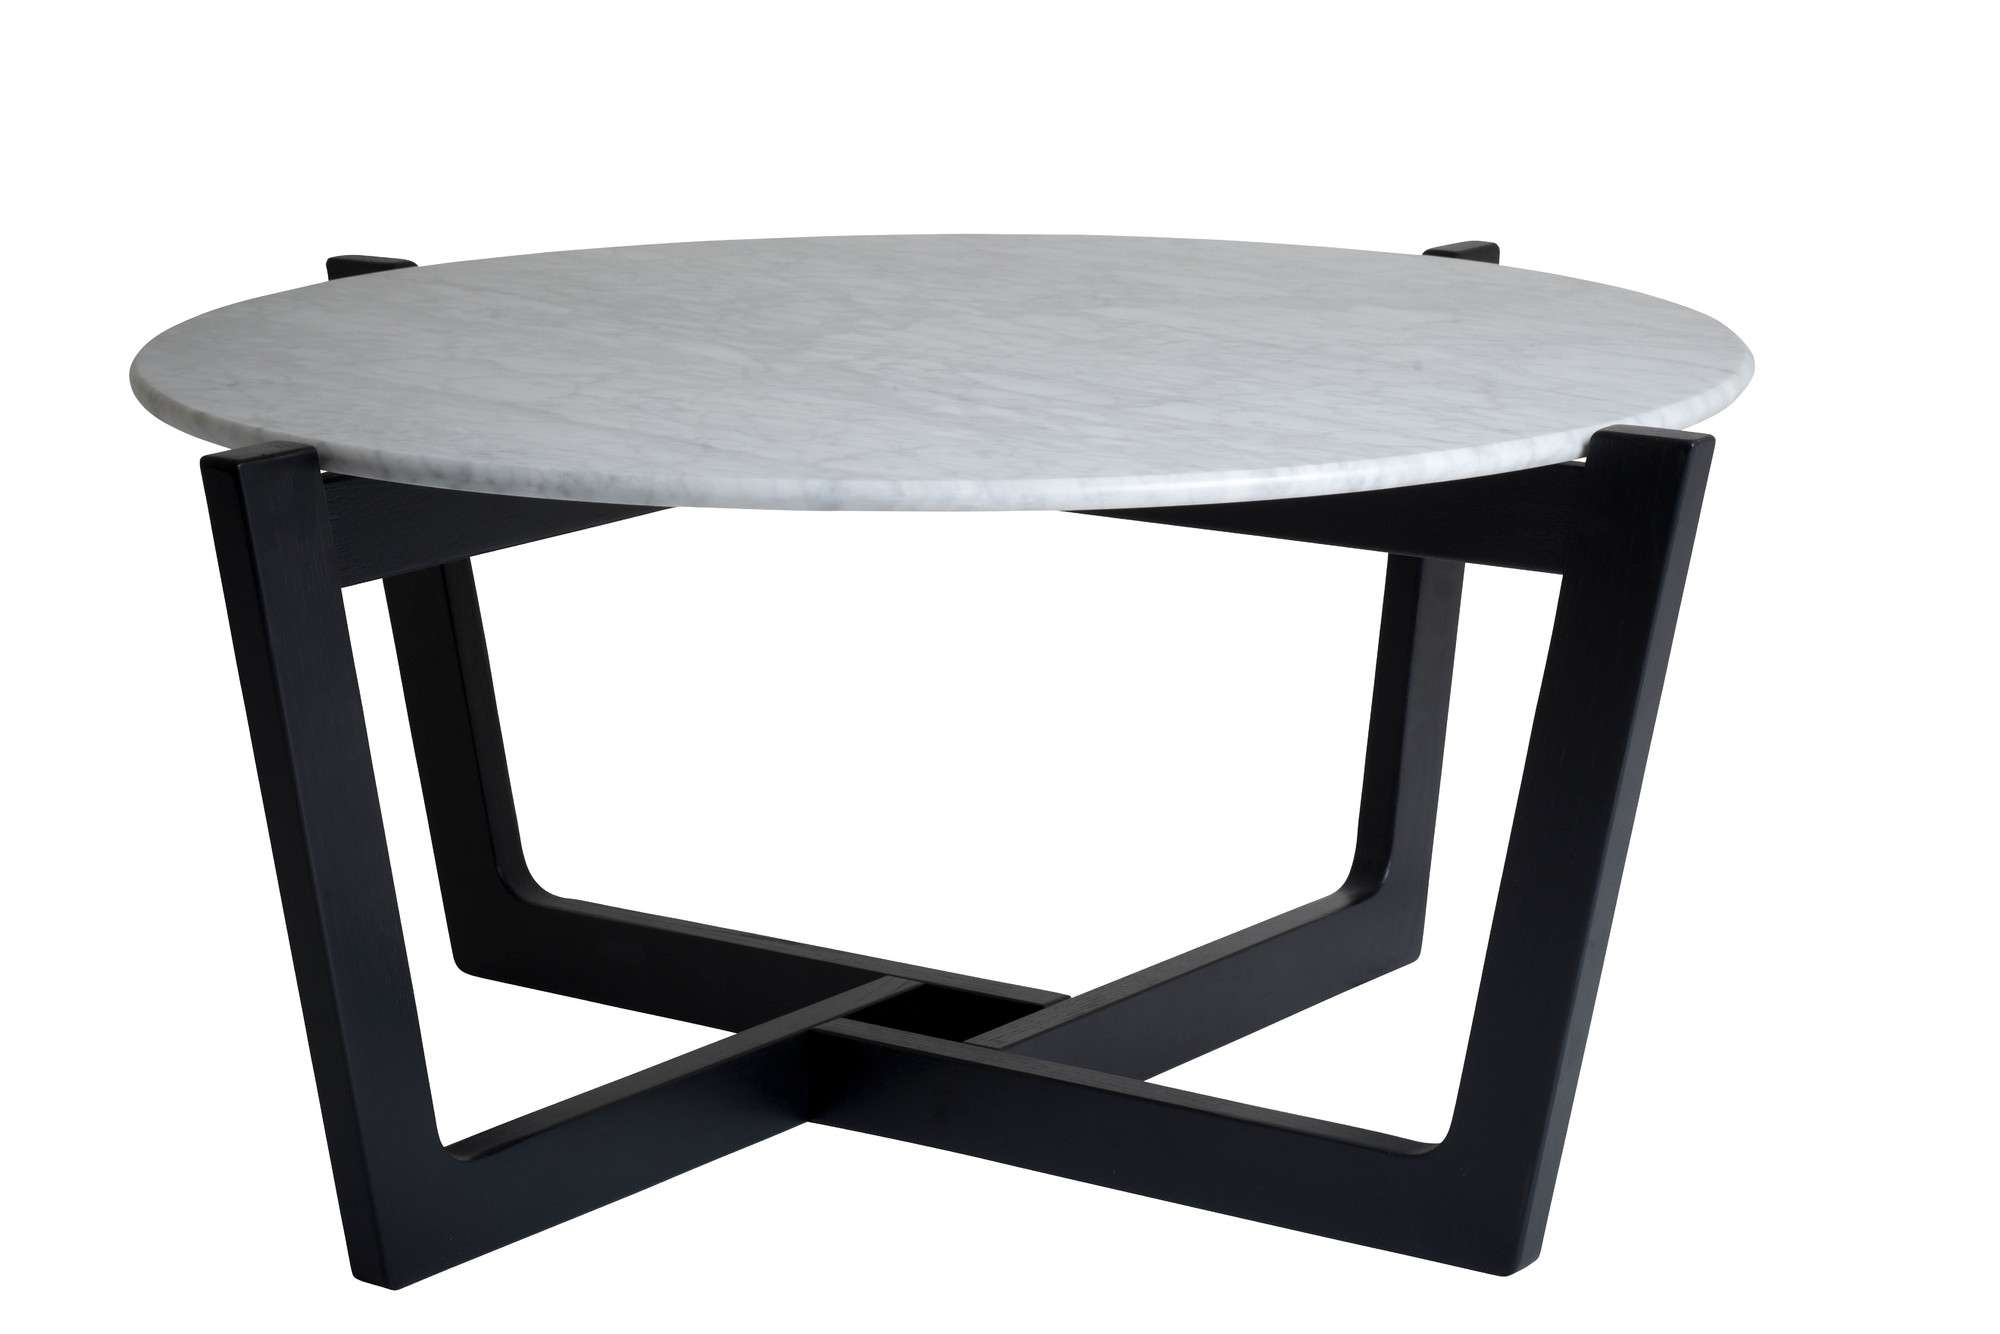 Coffee Tables : Black And Glass Coffee Table Malmsta Brown Cm Ikea Throughout Current Oval Black Glass Coffee Tables (View 13 of 20)